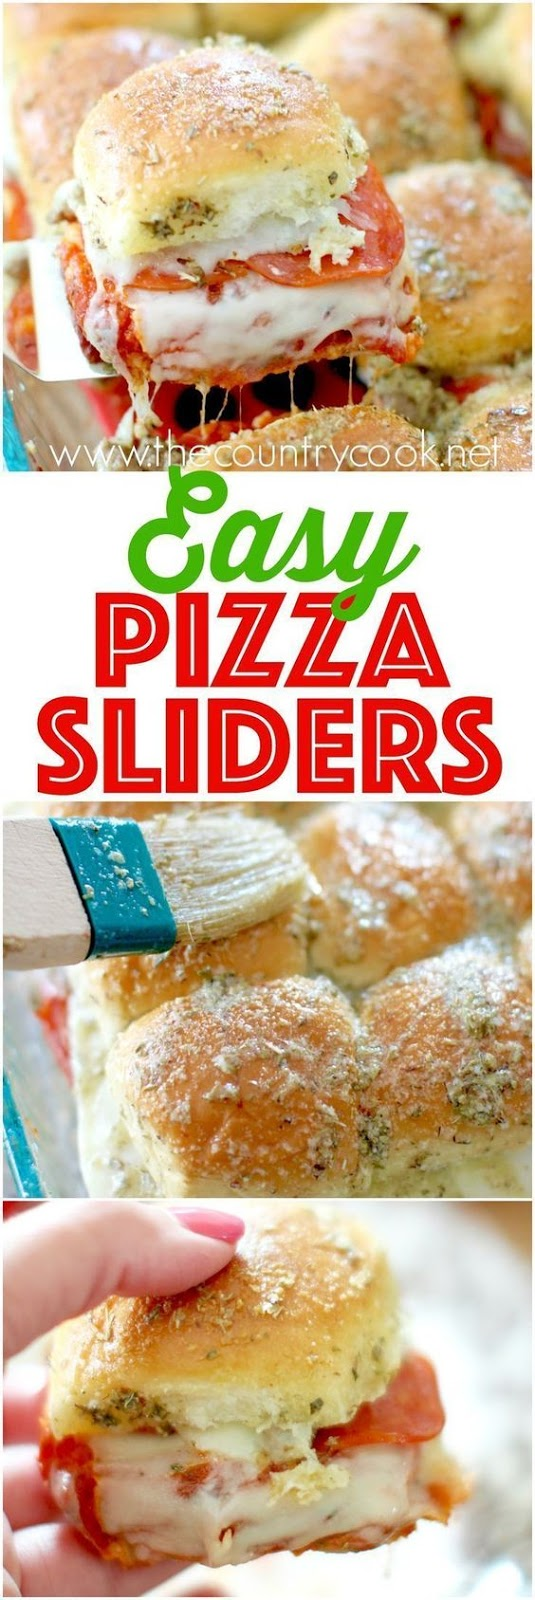 ★★★★☆ 7561 ratings | Pizza Pull-Apart Sliders #HEALTHYFOOD #EASYRECIPES #DINNER #LAUCH #DELICIOUS #EASY #HOLIDAYS #RECIPE #Pizza #PullApart #Sliders